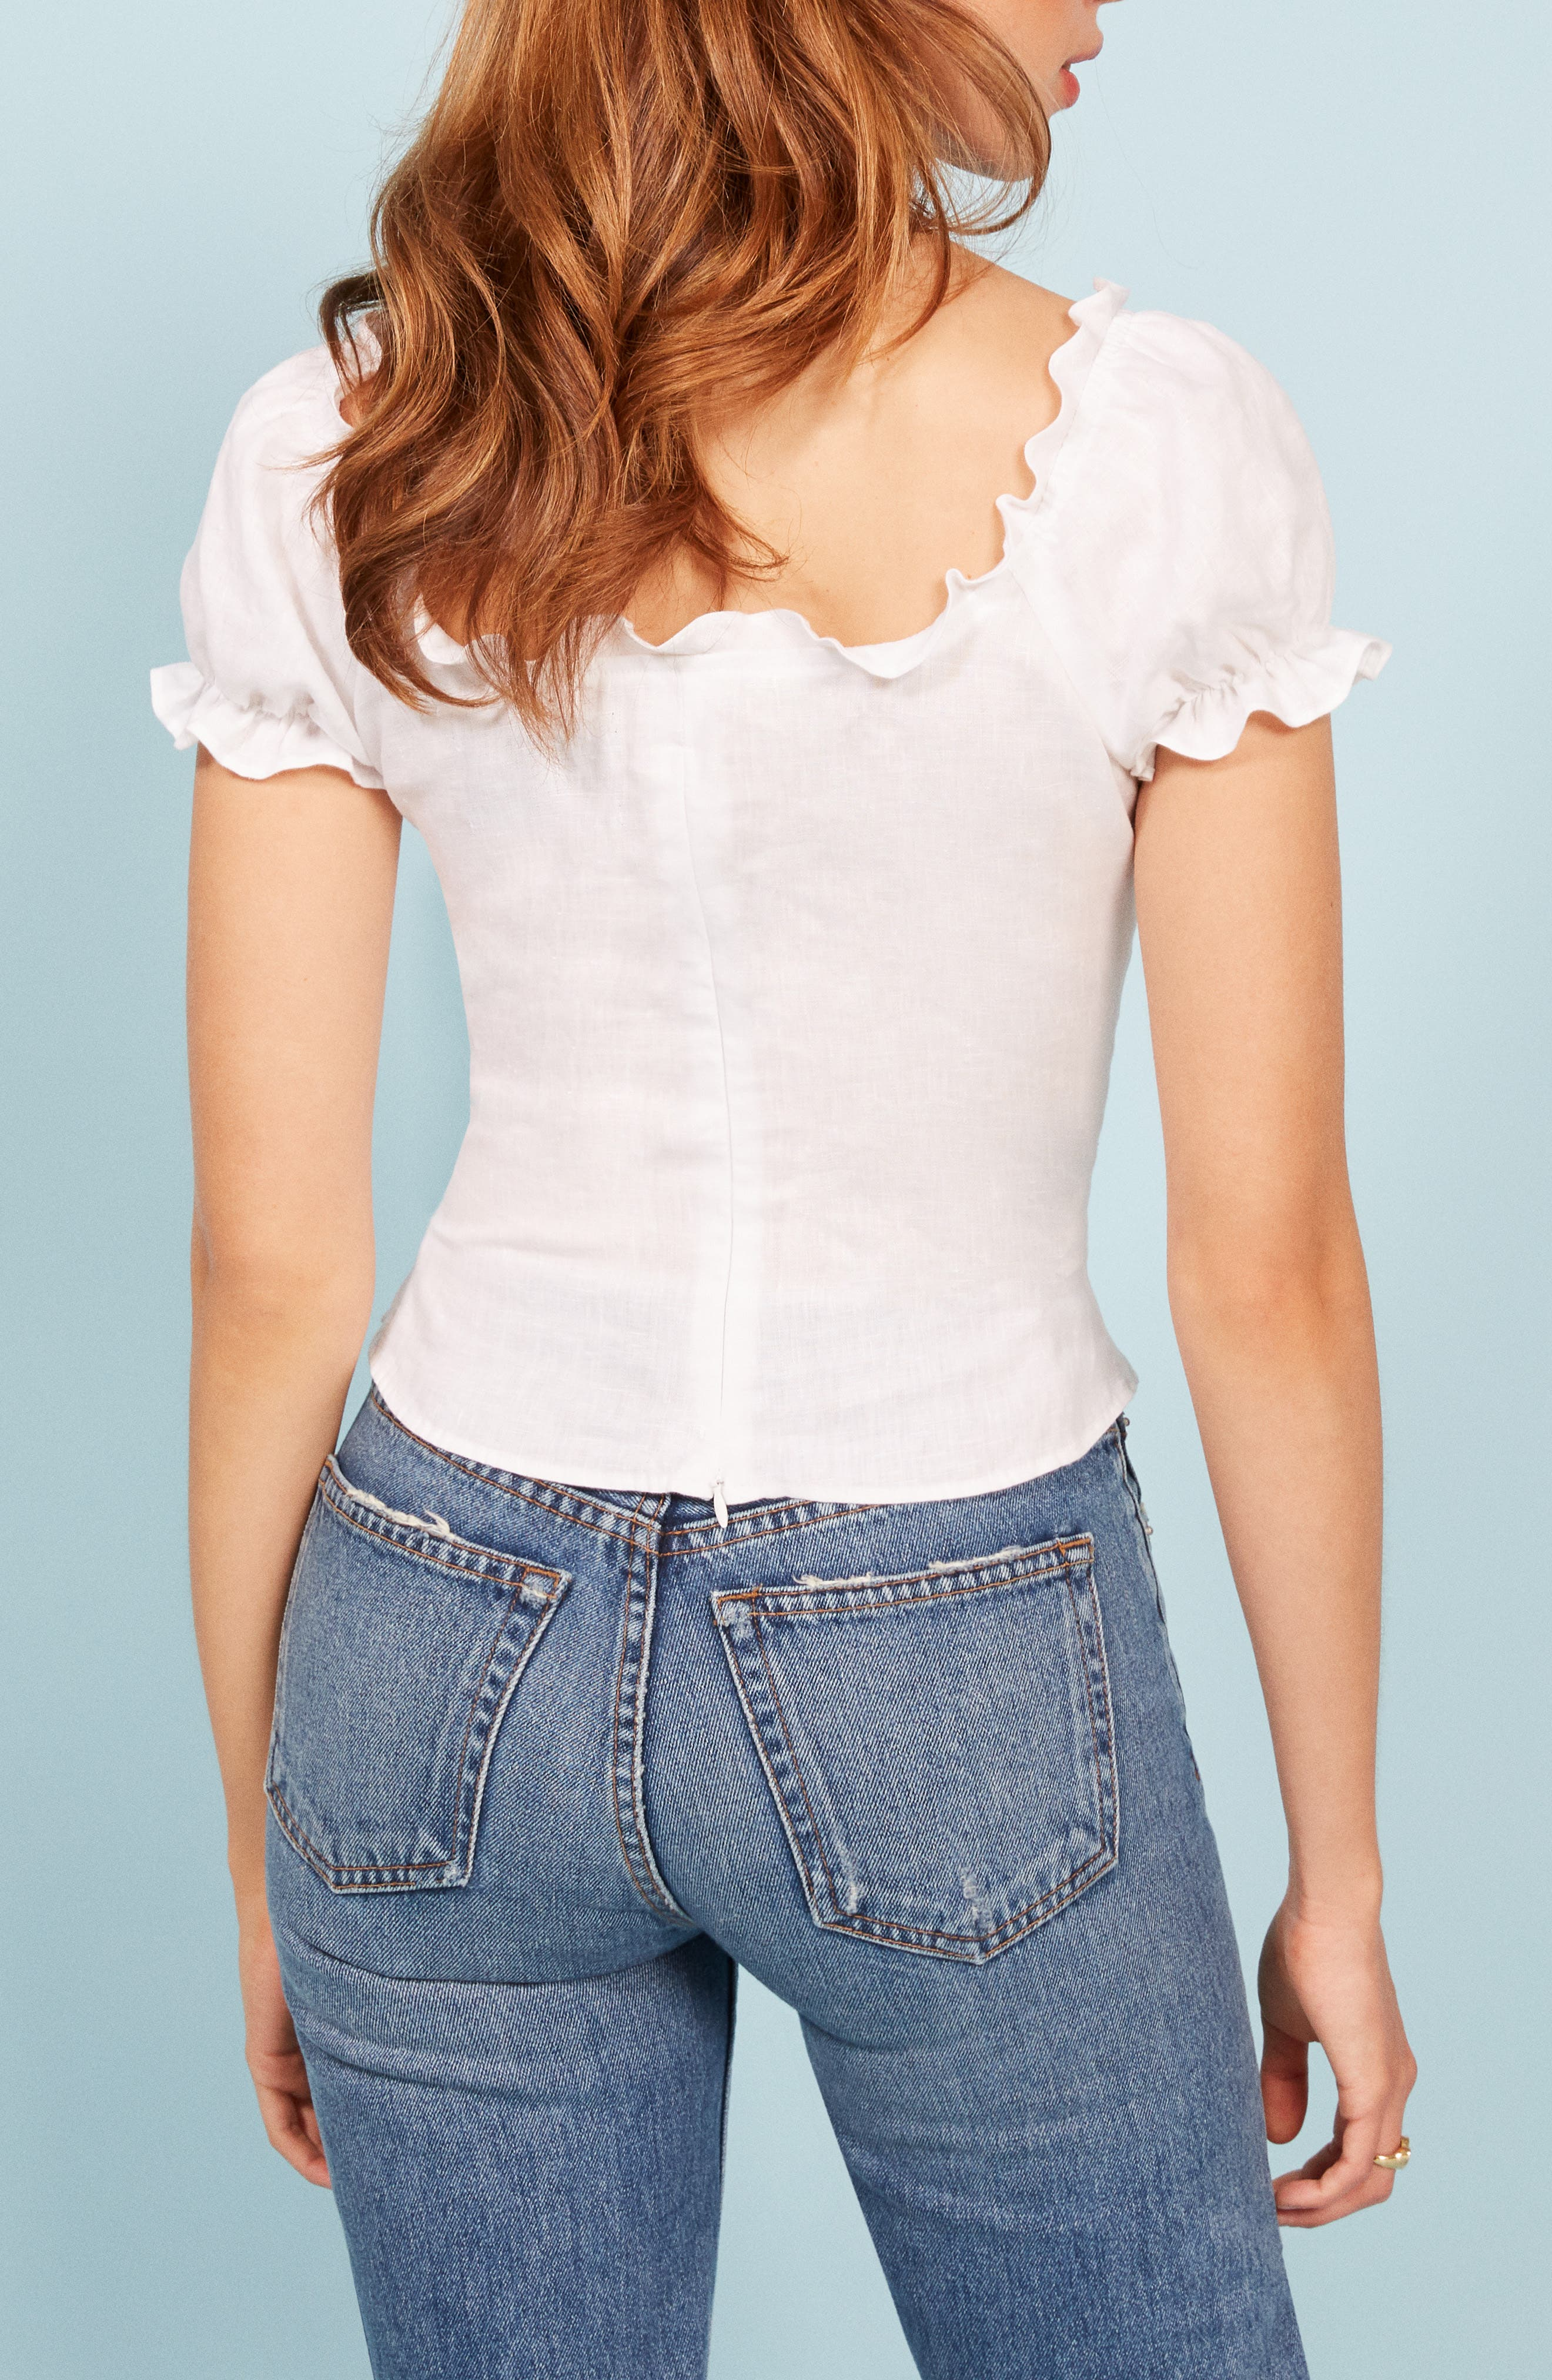 Cassidy Corset Top,                             Alternate thumbnail 3, color,                             WHITE